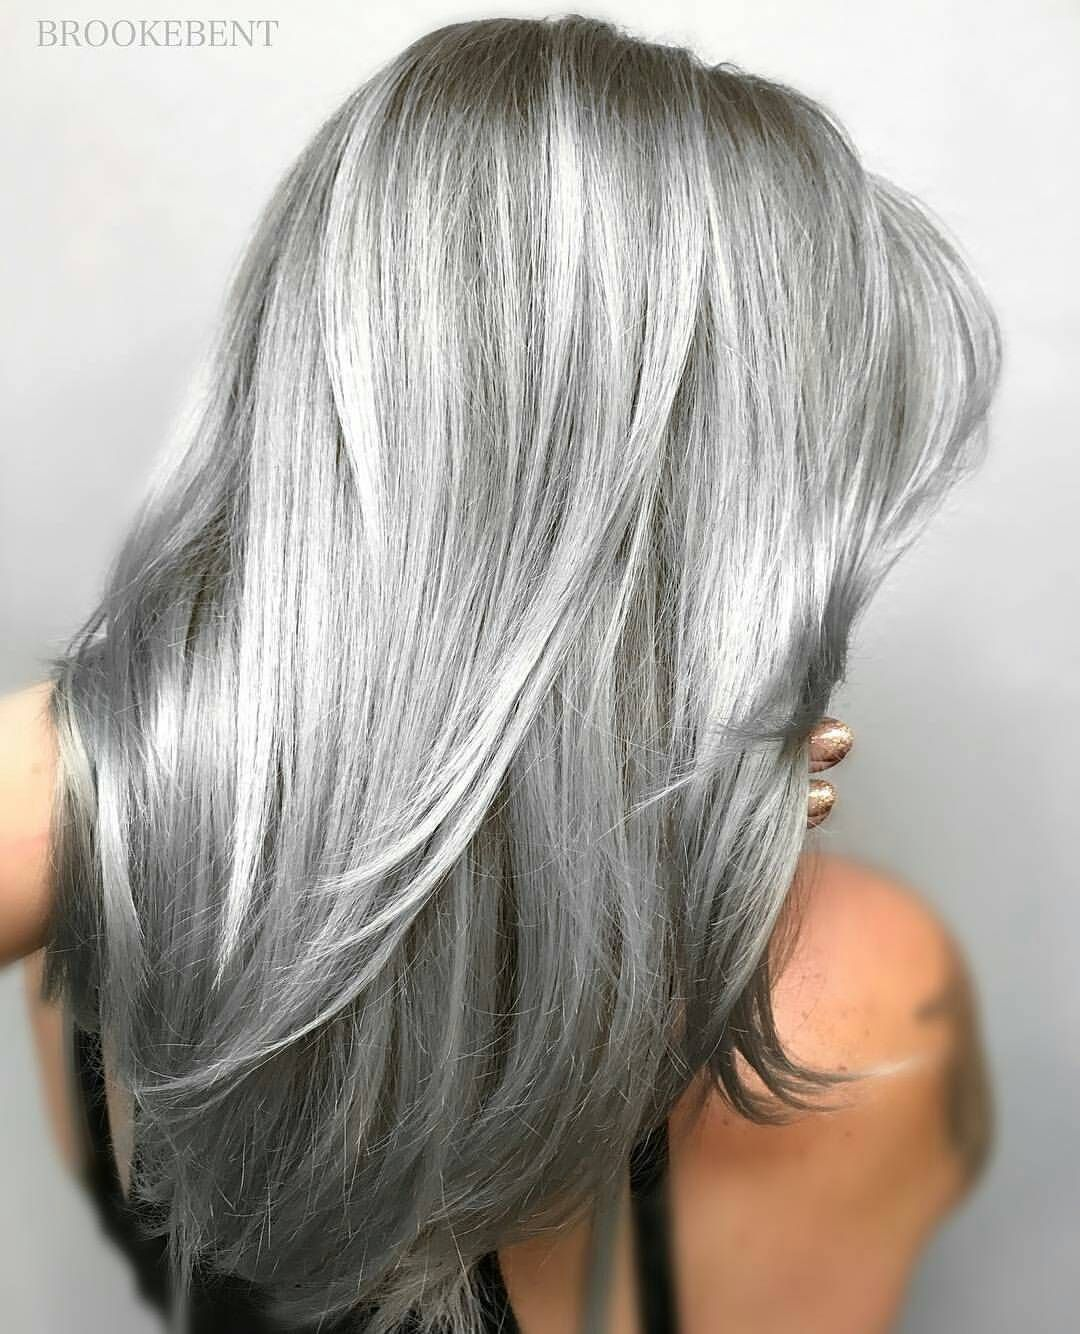 176 likes 3 comments hairkingz hairkingz on instagram we we want to share this royal hairart made by with you its the perfect silver hair urmus Choice Image